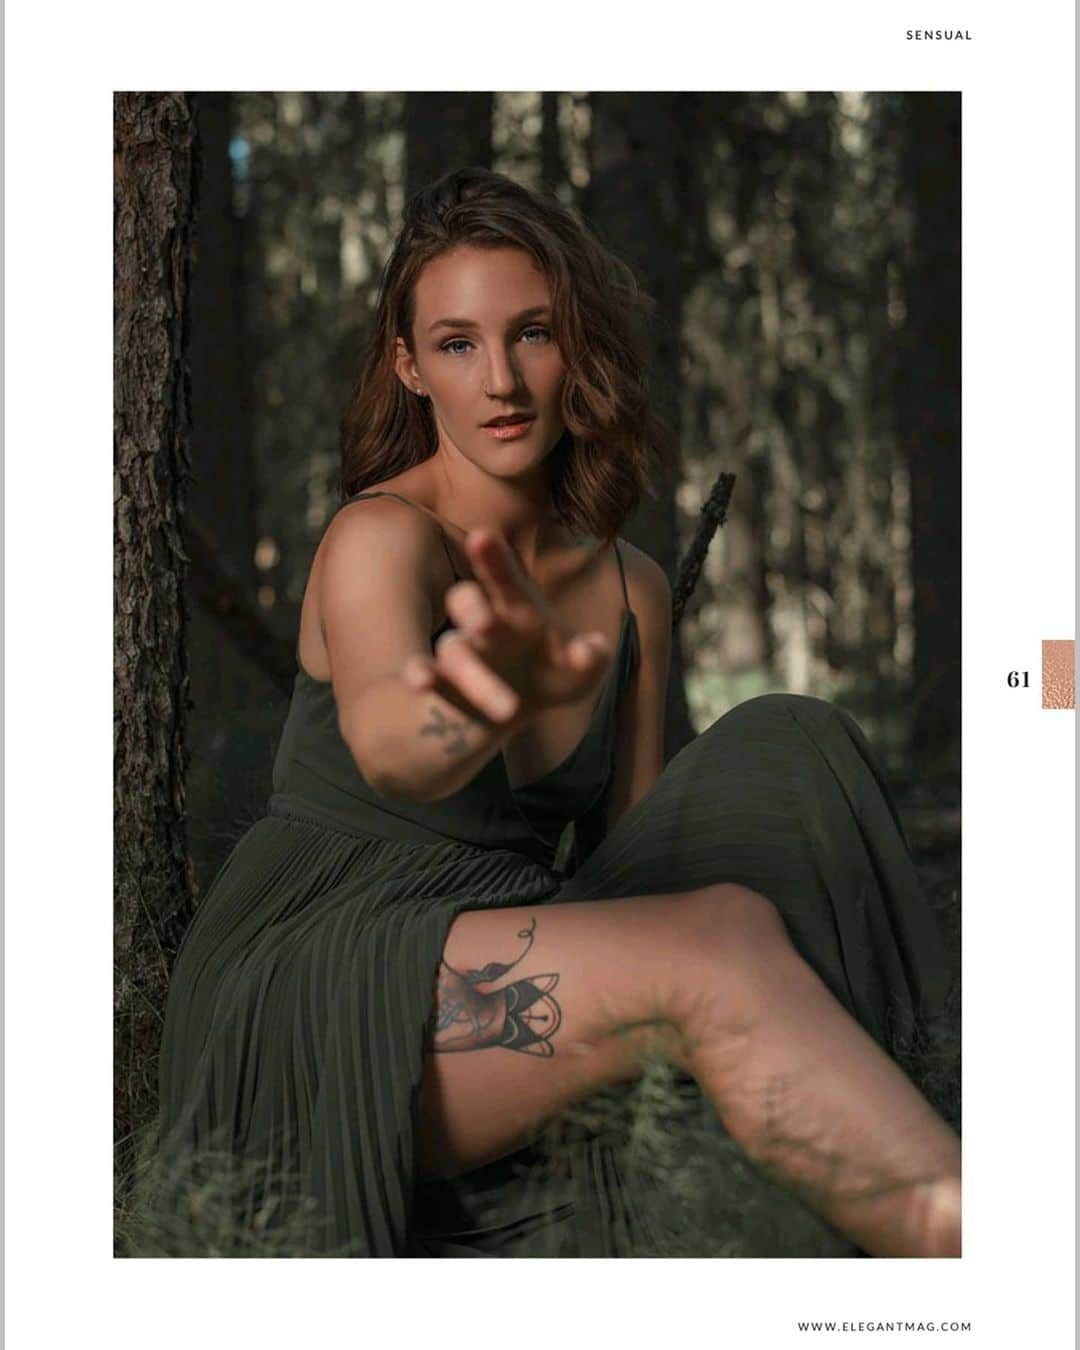 Beautiful inked Canadian model Robyn LS @robin.in.the.clouds bare foot in the woods wearing a green dress for a boudoir photo session by Kelvin Vinx Comendador @vinxreddervon